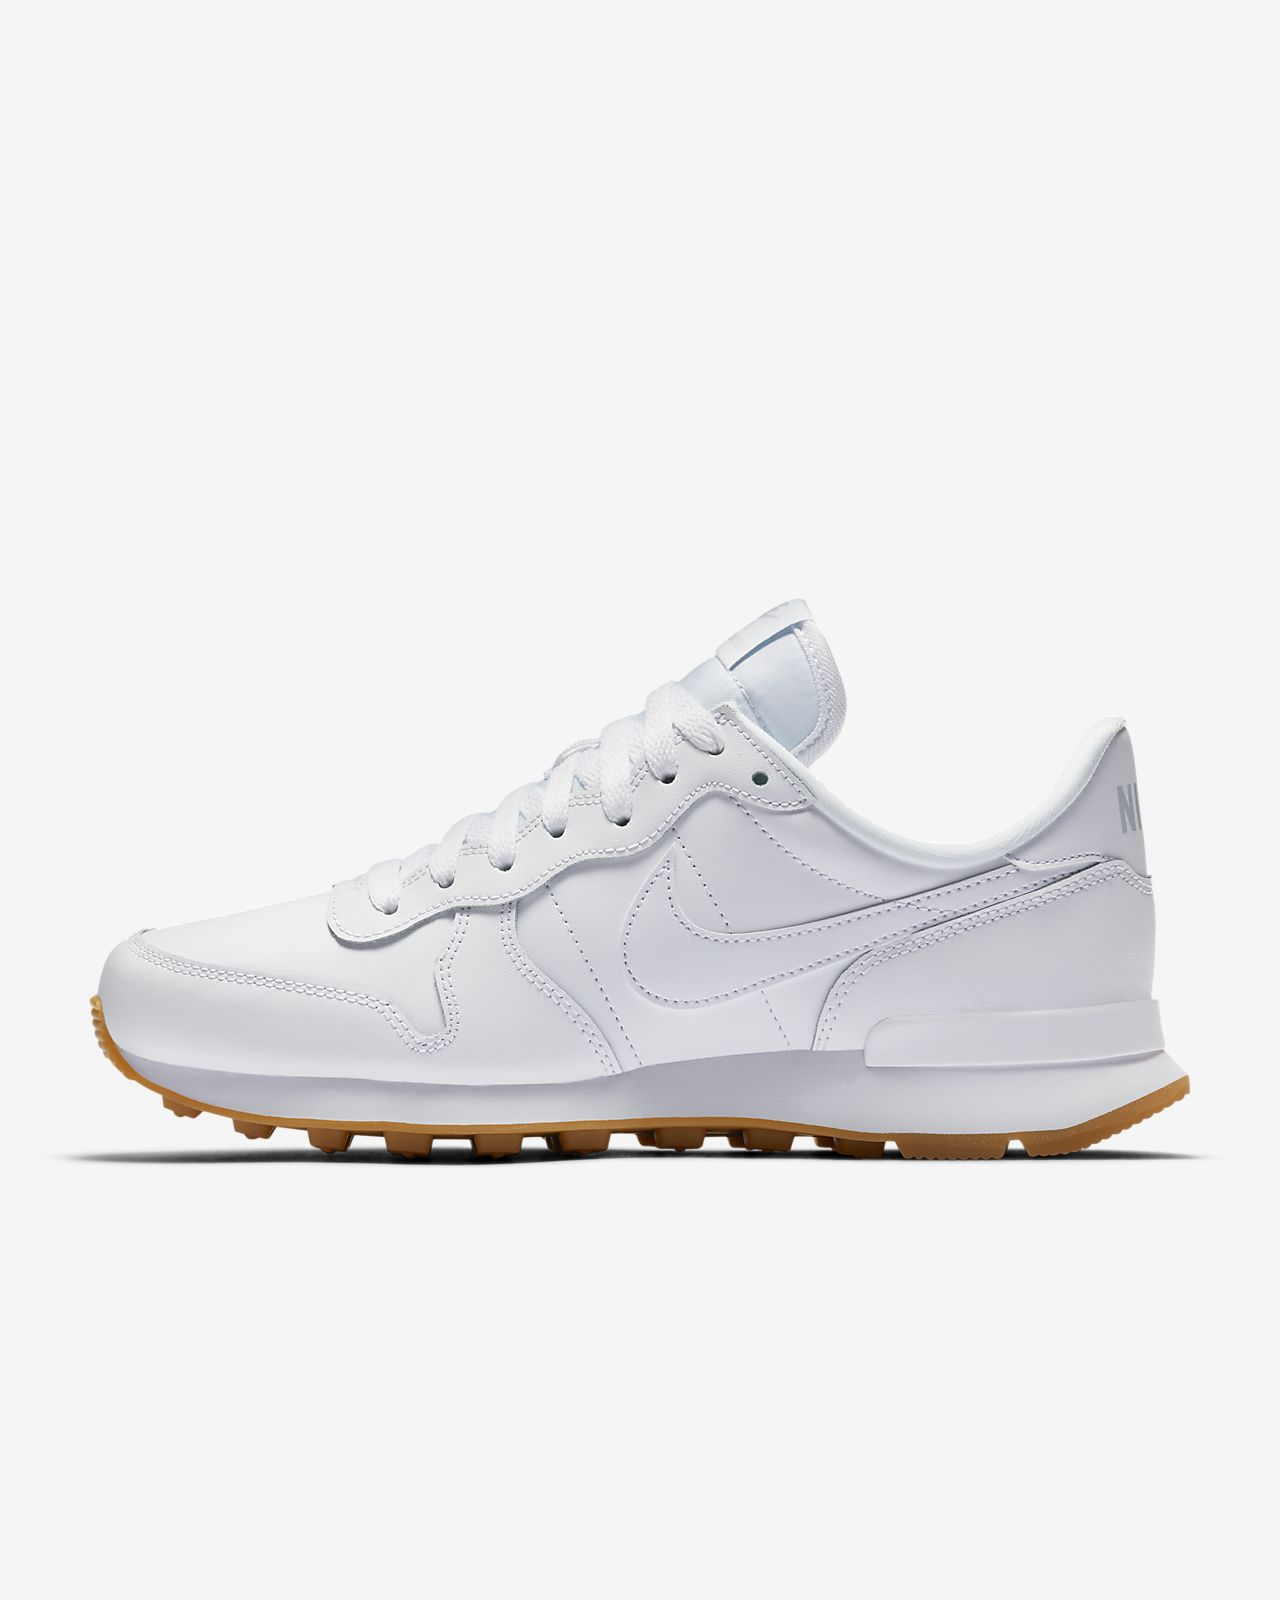 united states save up to 80% on wholesale Nike Internationalist Damenschuh